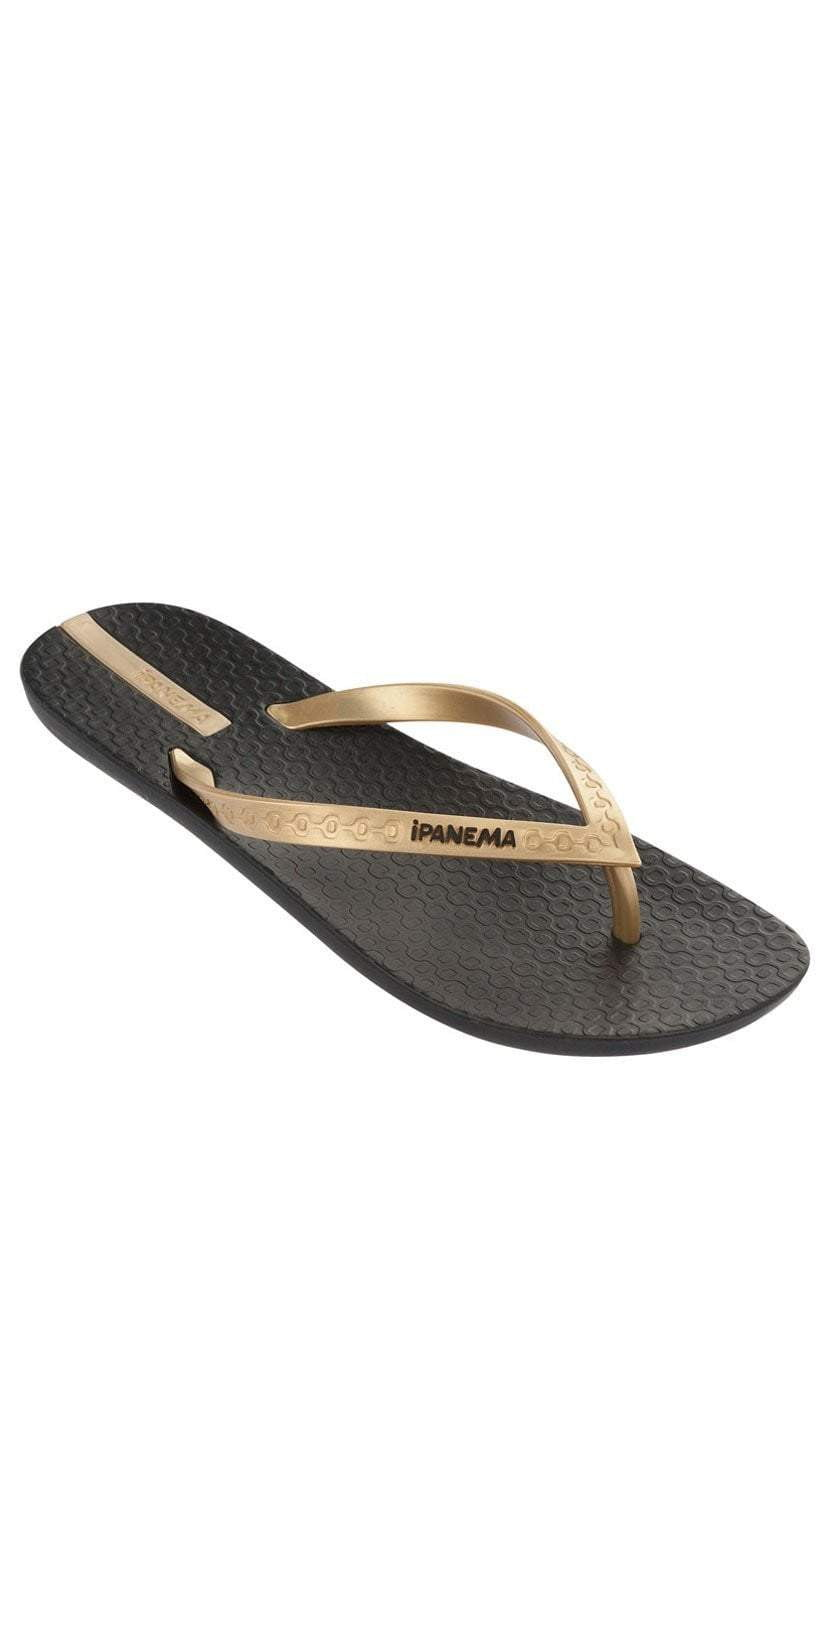 3f7733348f08 iPanema Neo Sense Flip Flops in Black Gold 21976-BLK GLD – South ...